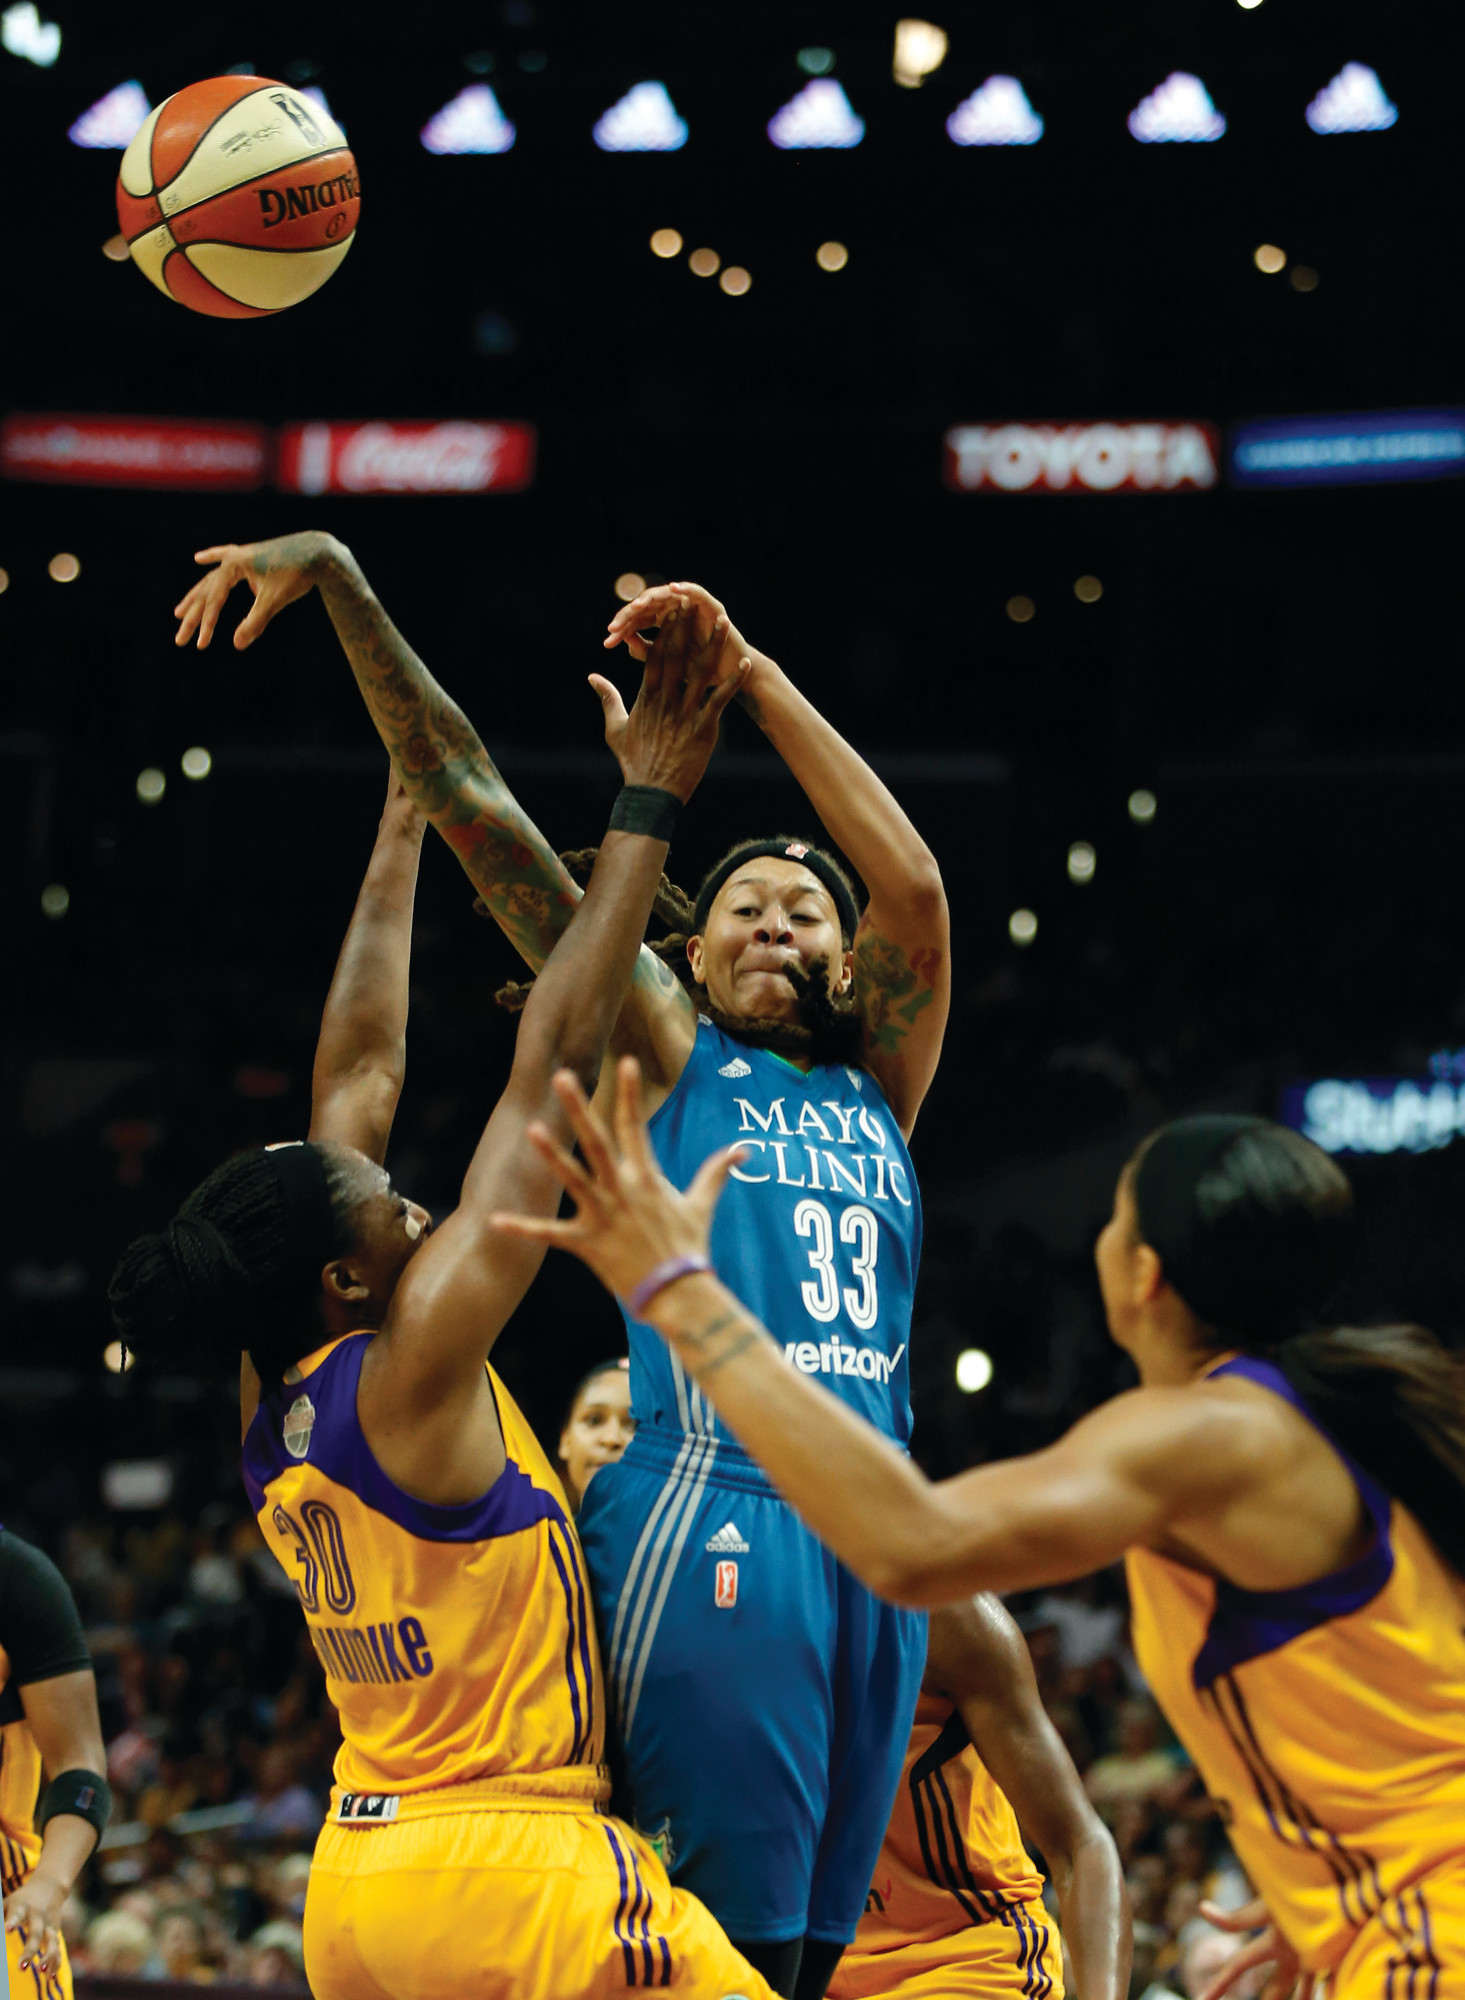 THE ASSOCIATED PRESSMinnesota guard Seimone Augustus, center, passes the ball over Los Angeles  forwards Nneka Ogwumike (30) and Candace Parker during the Lynx's 80-69 victory on Sunday in Game 4 of the WNBA Finals.